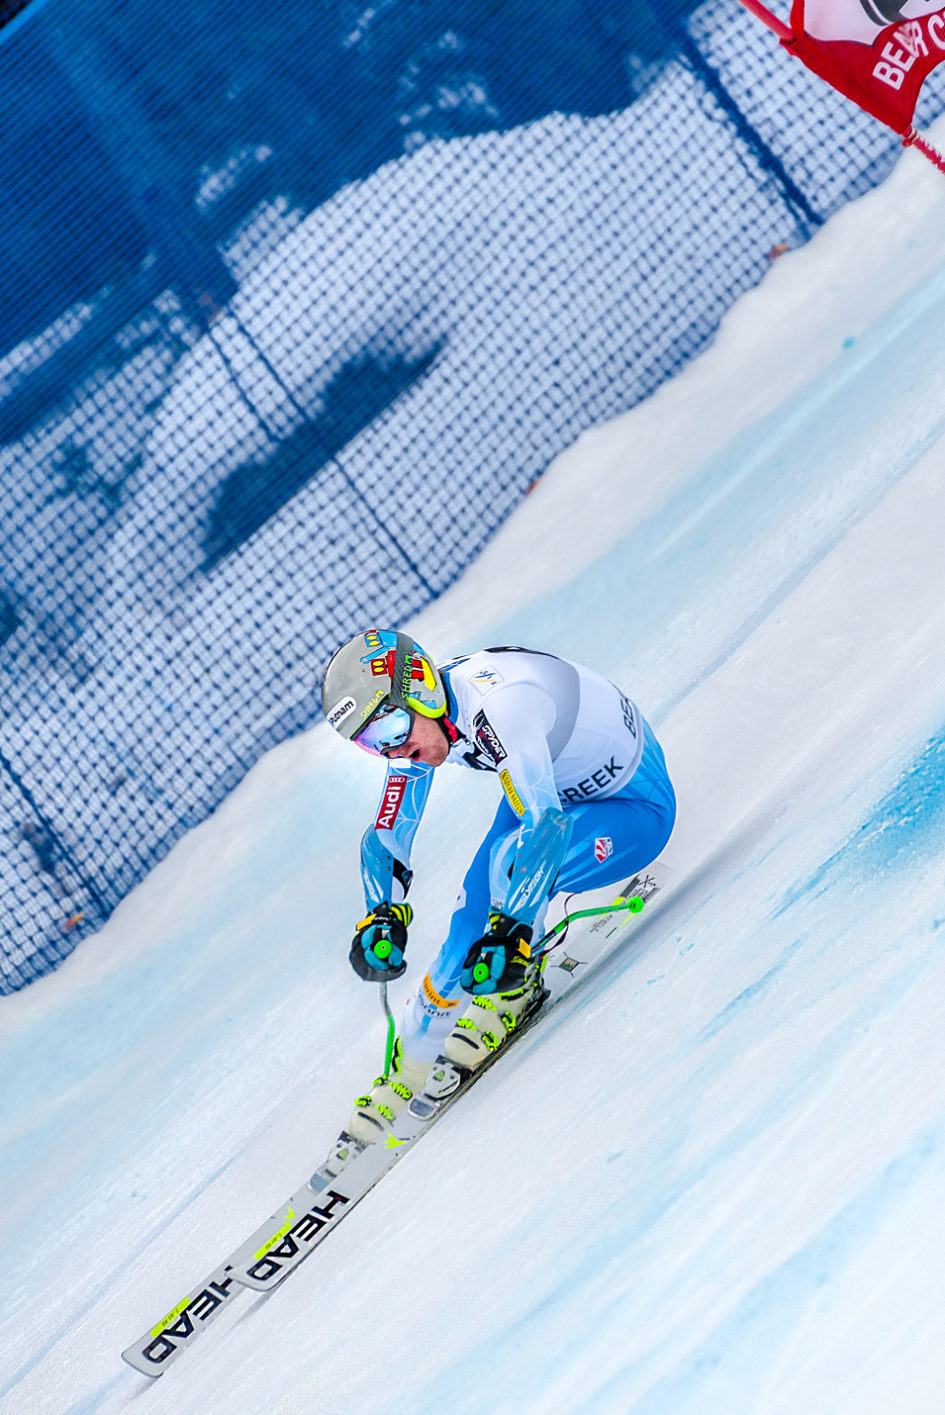 Vail Valley Foundation Birds of Prey World Cup Ski Races Image